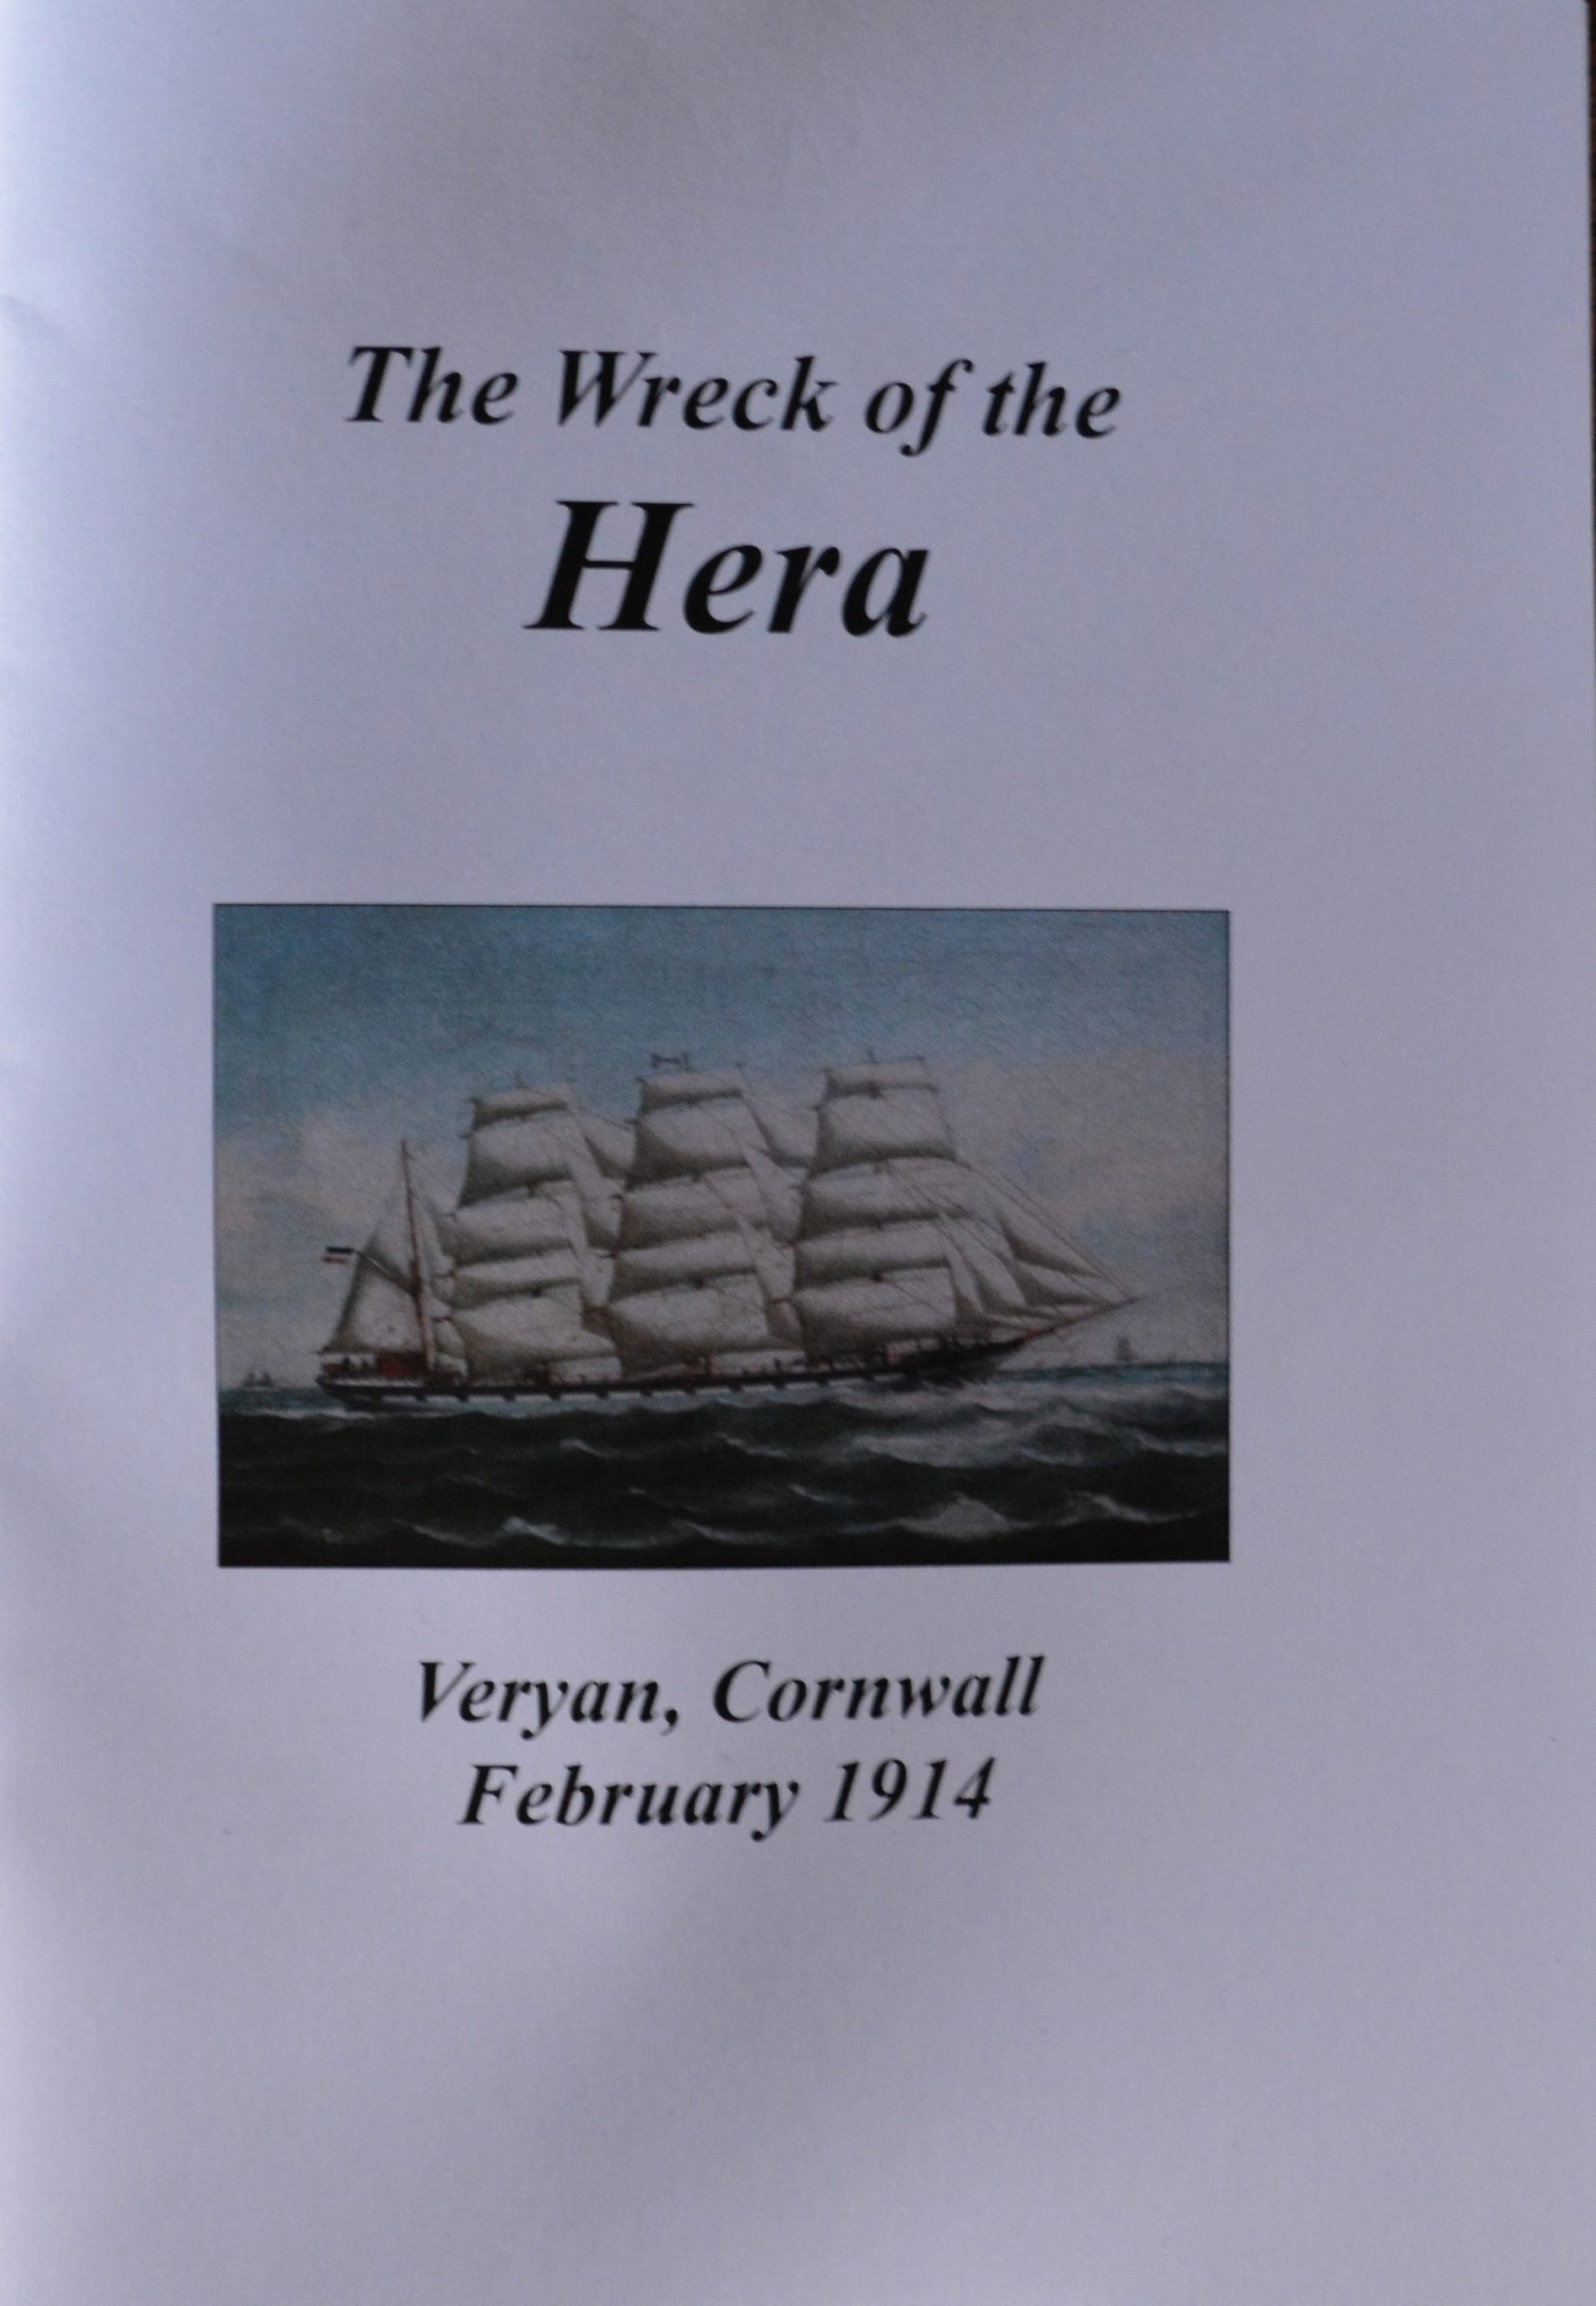 Wreck of the Hera